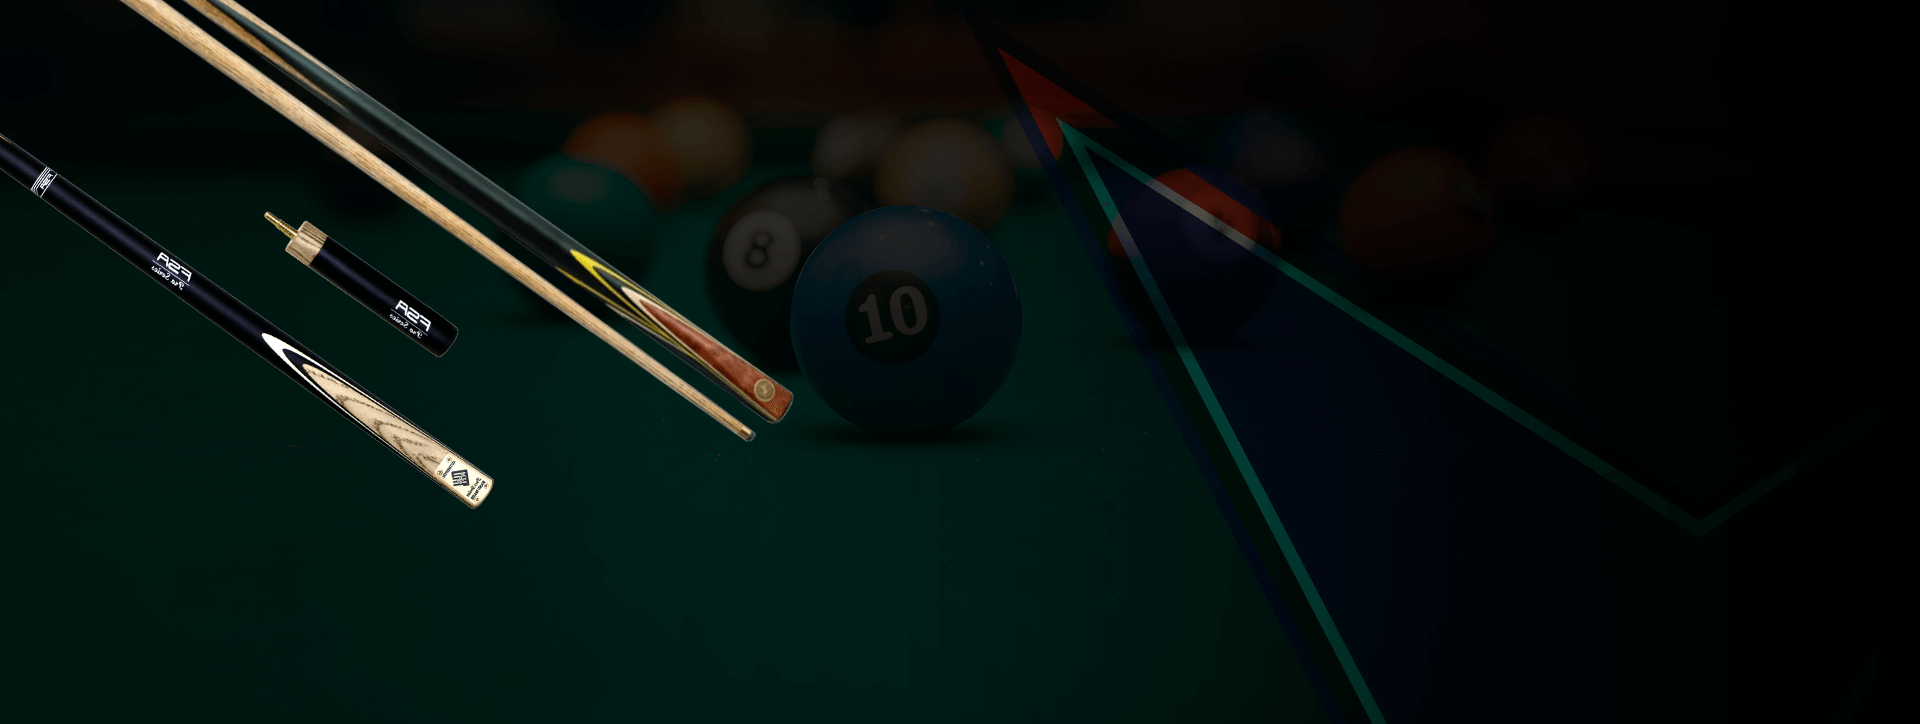 The cue shop has the biggest range of pool snooker billiard cues, cue cases, cue accessories